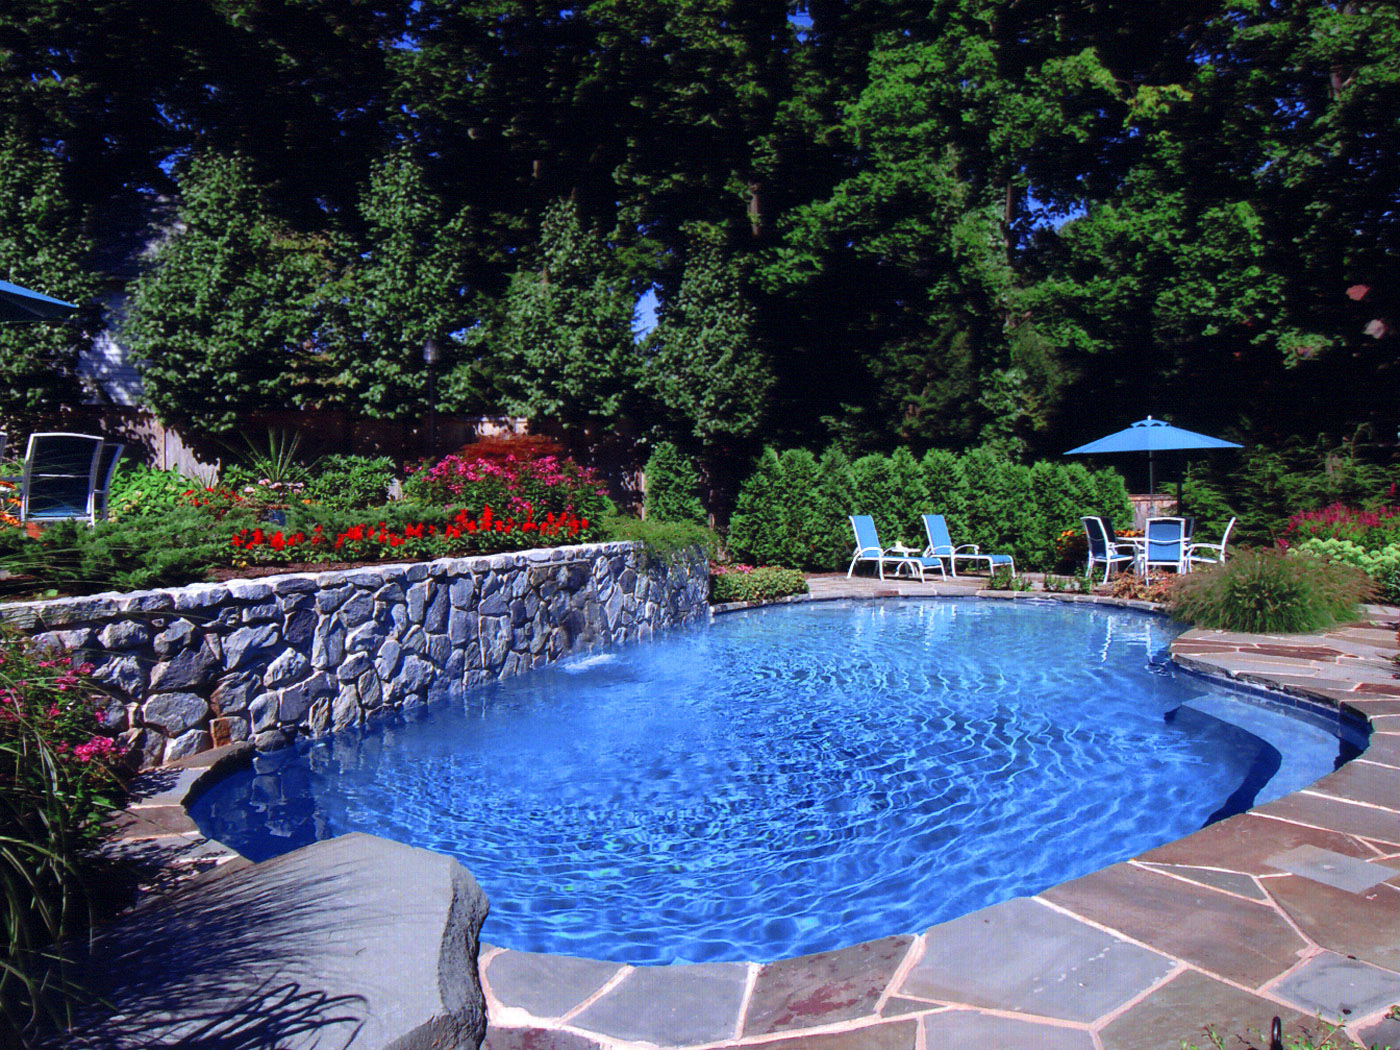 Natural pool and waterfall with colorful plants and diving board in Upper Brookville